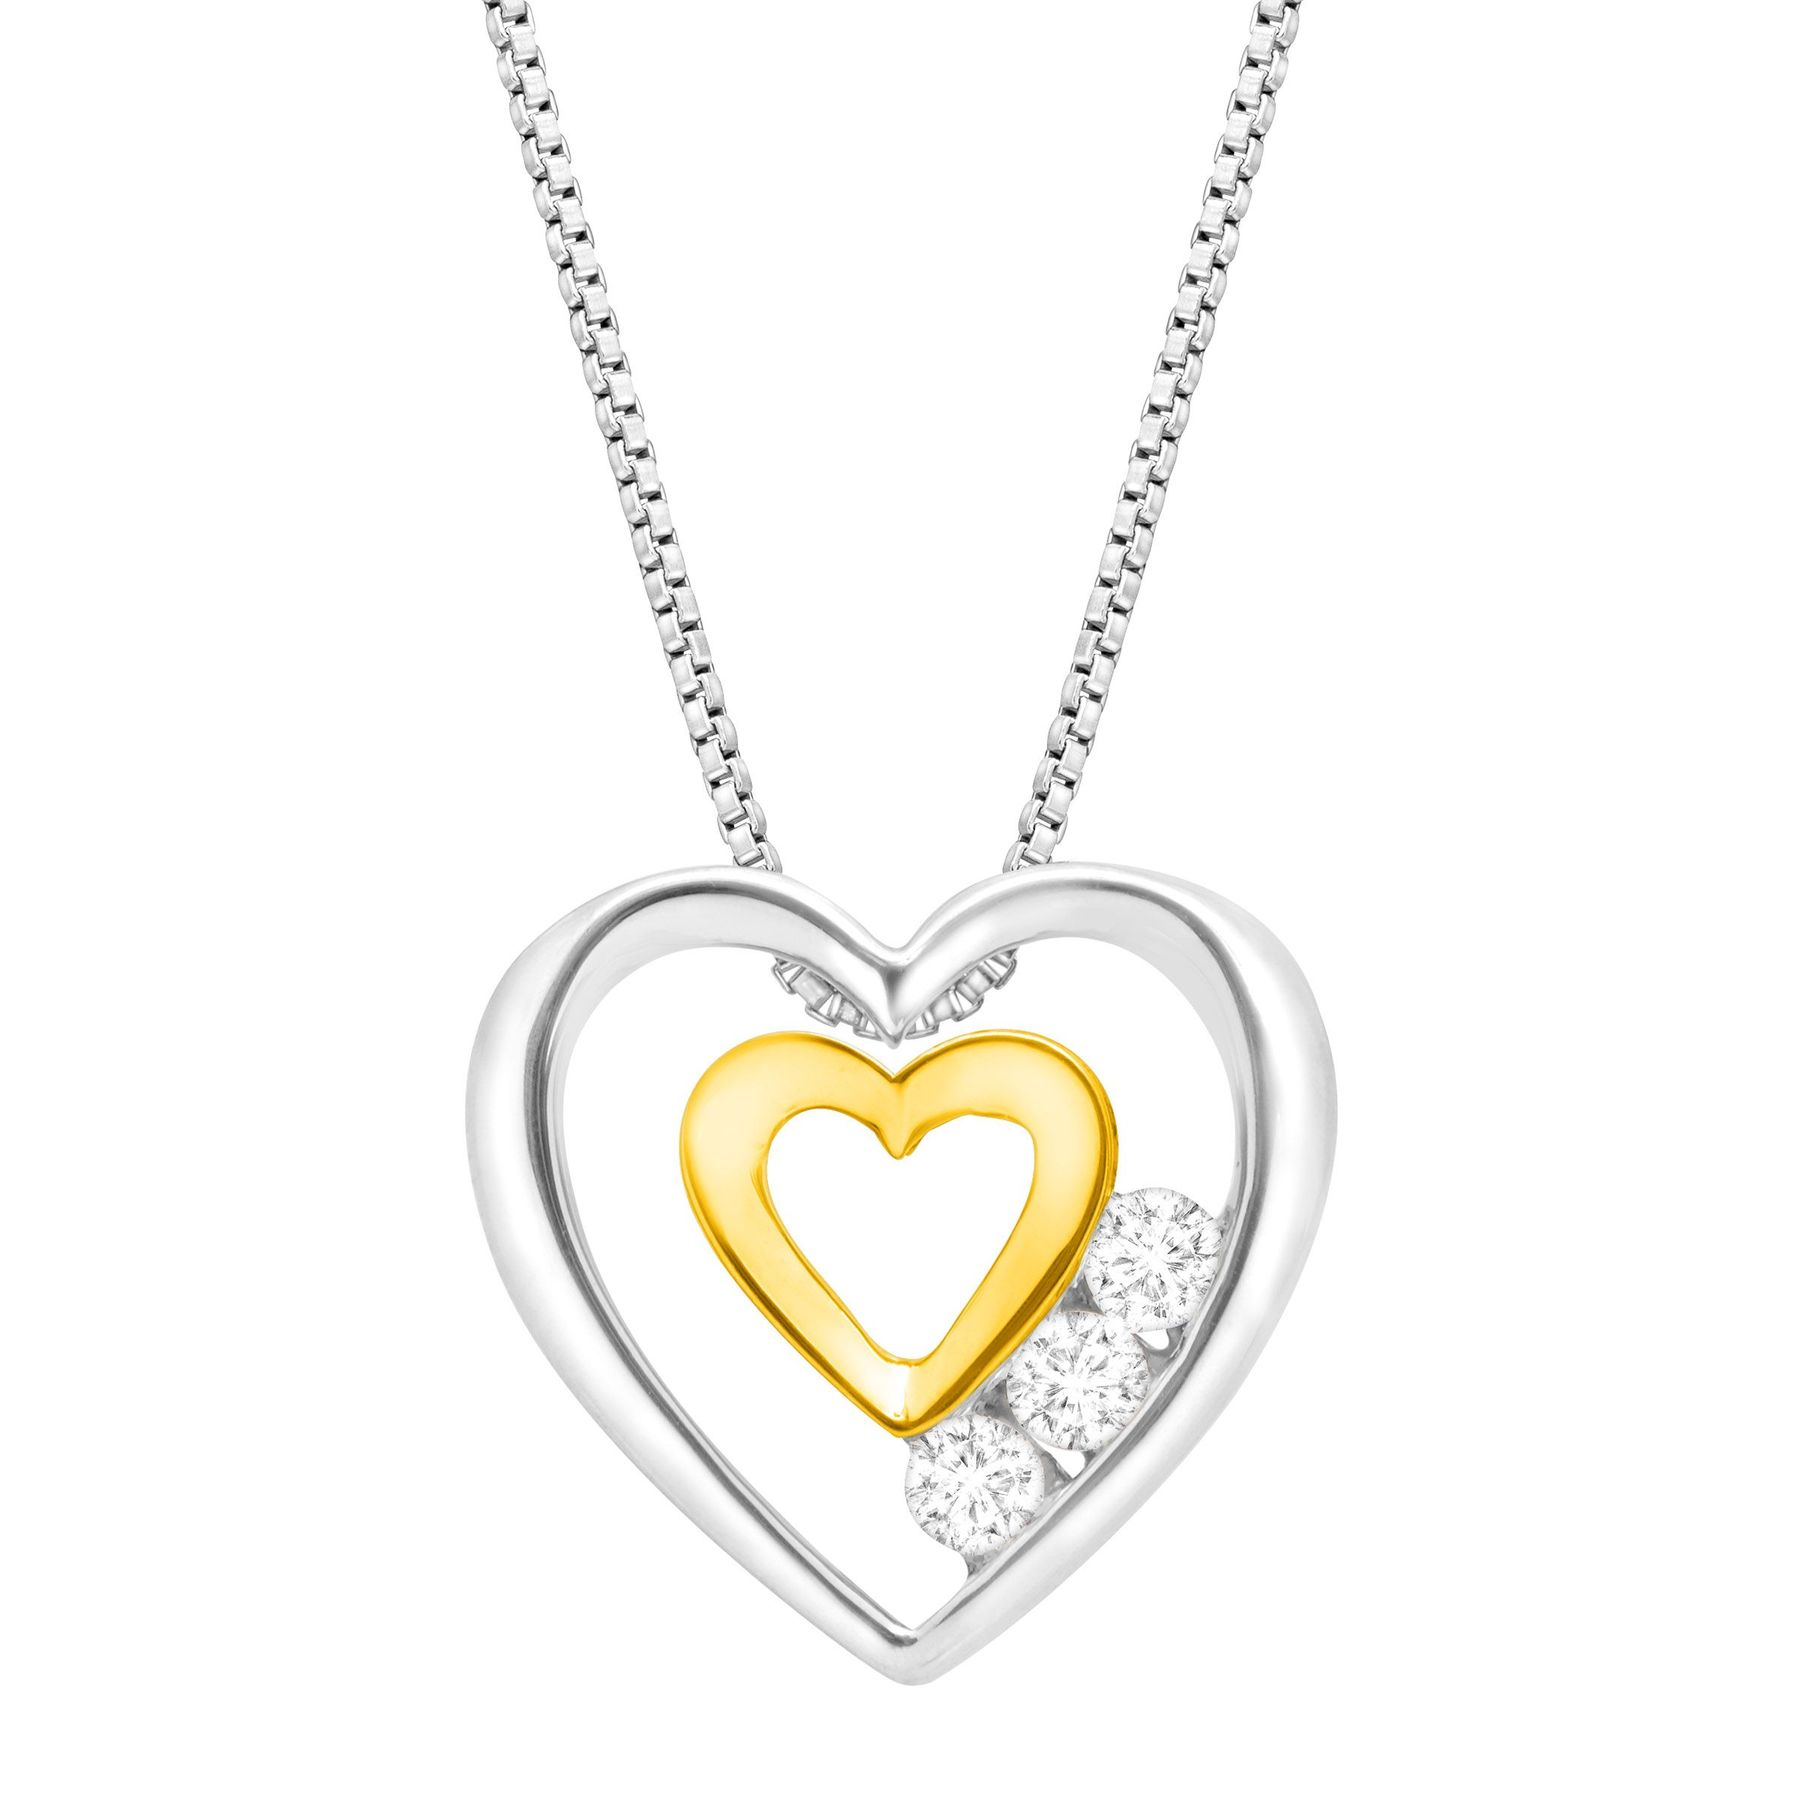 double pendant heart smart silver pid bfme in product necklace